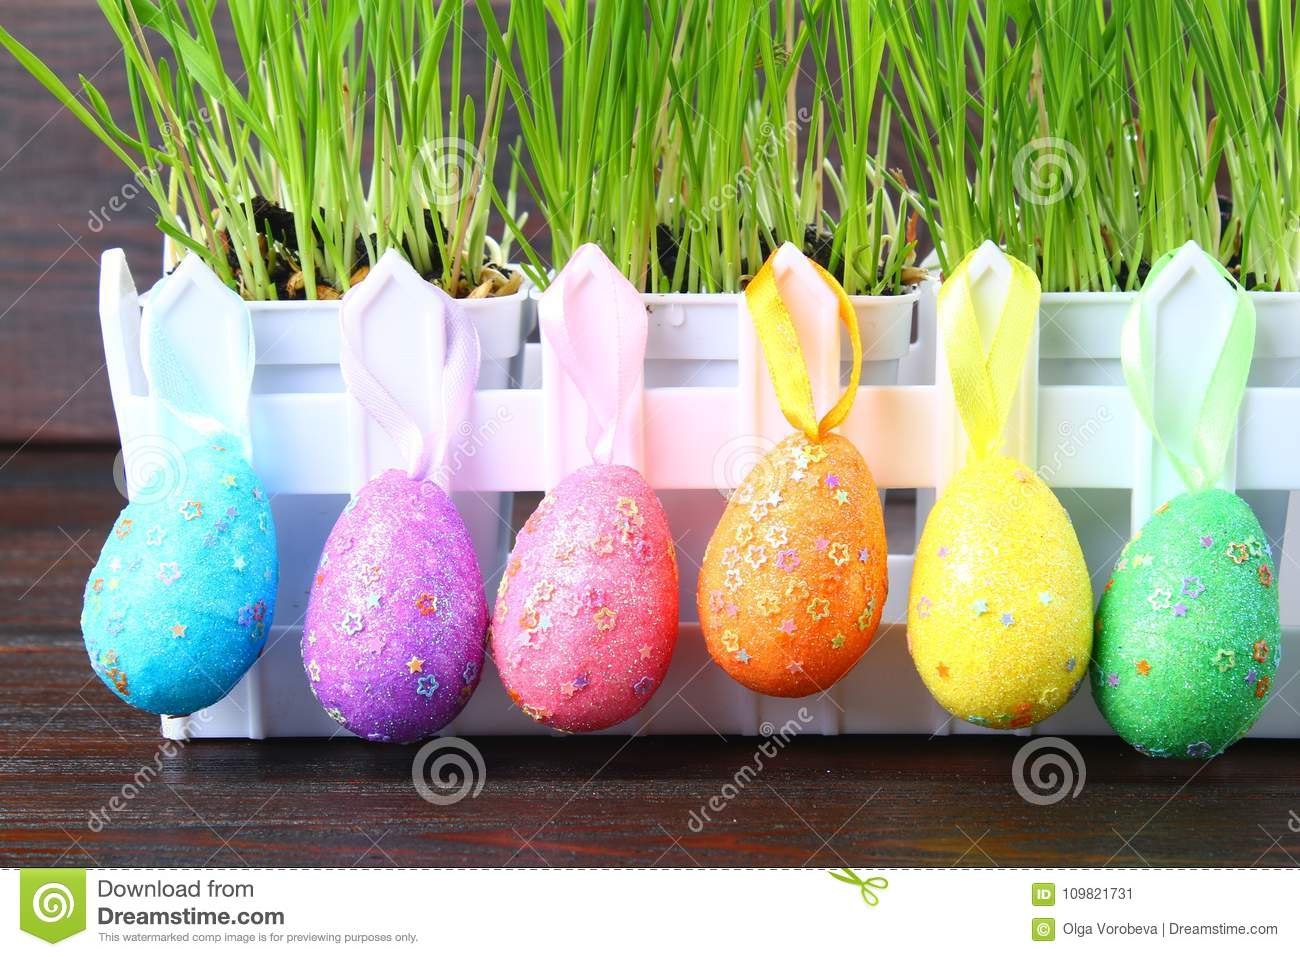 Colorful decorative eggs of rainbow colors on a background of green grass. Easter.